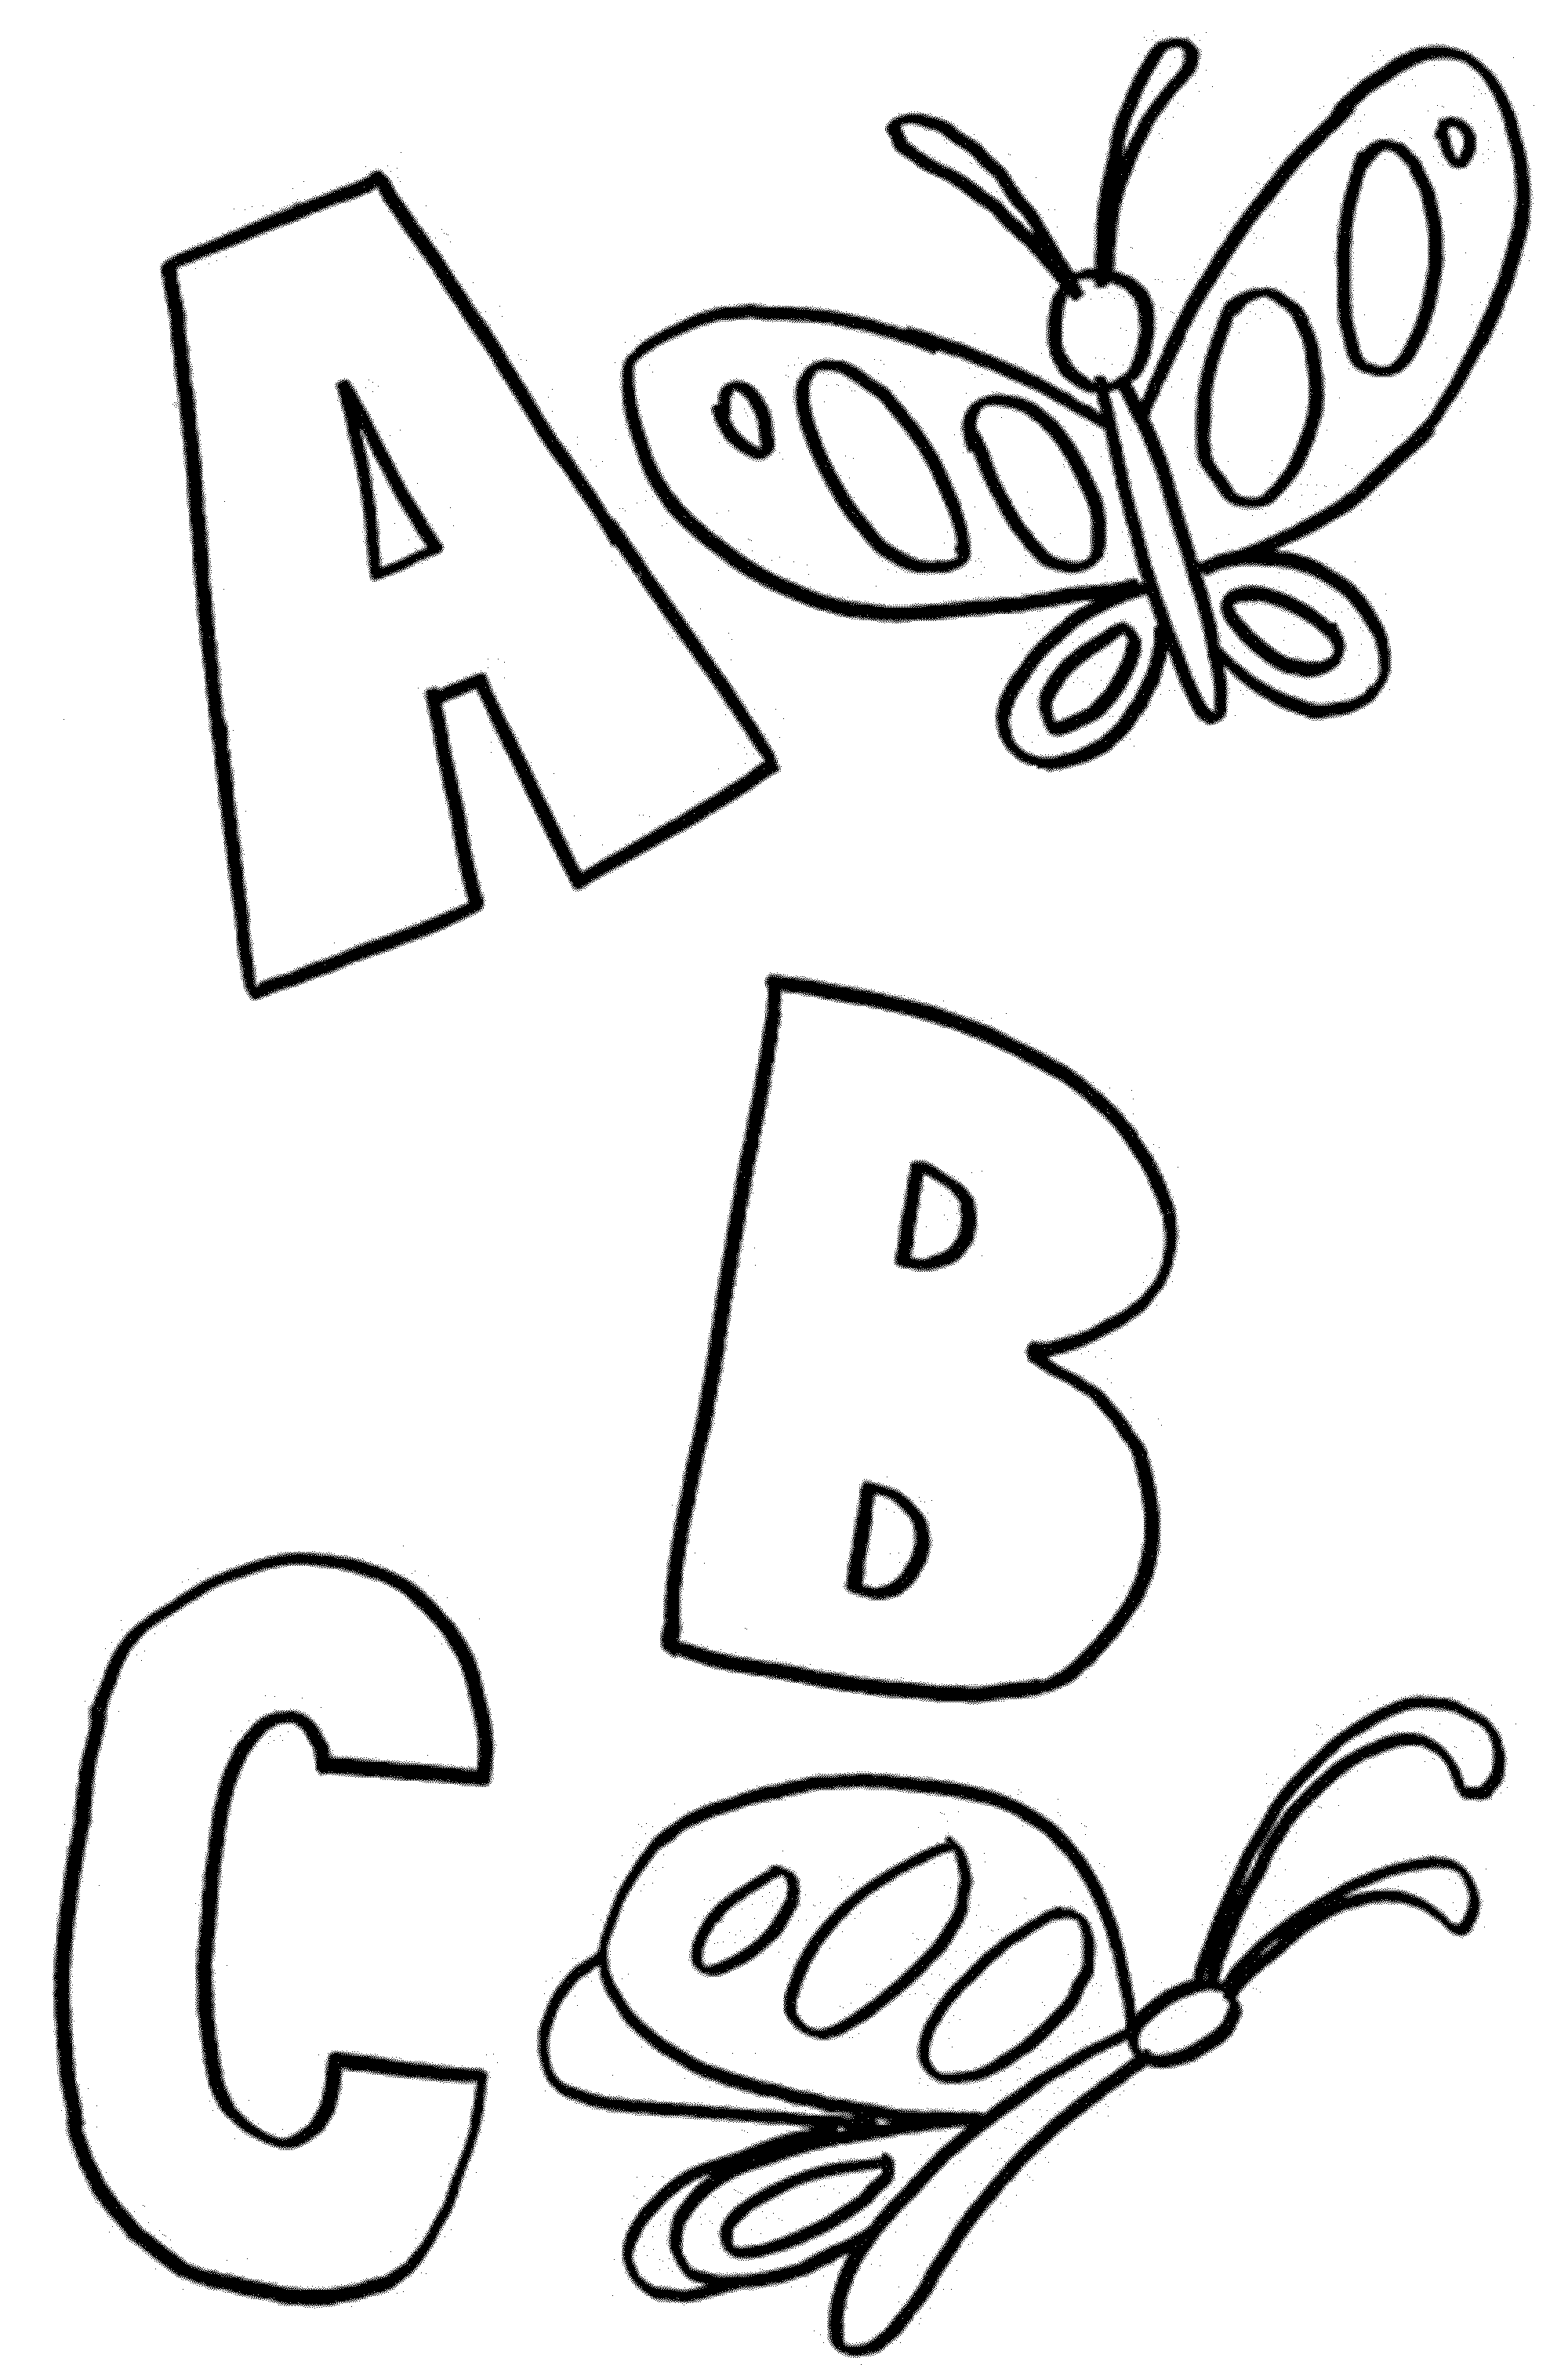 ABC-animals-coloring-pages-kindergarten | | BestAppsForKids.com